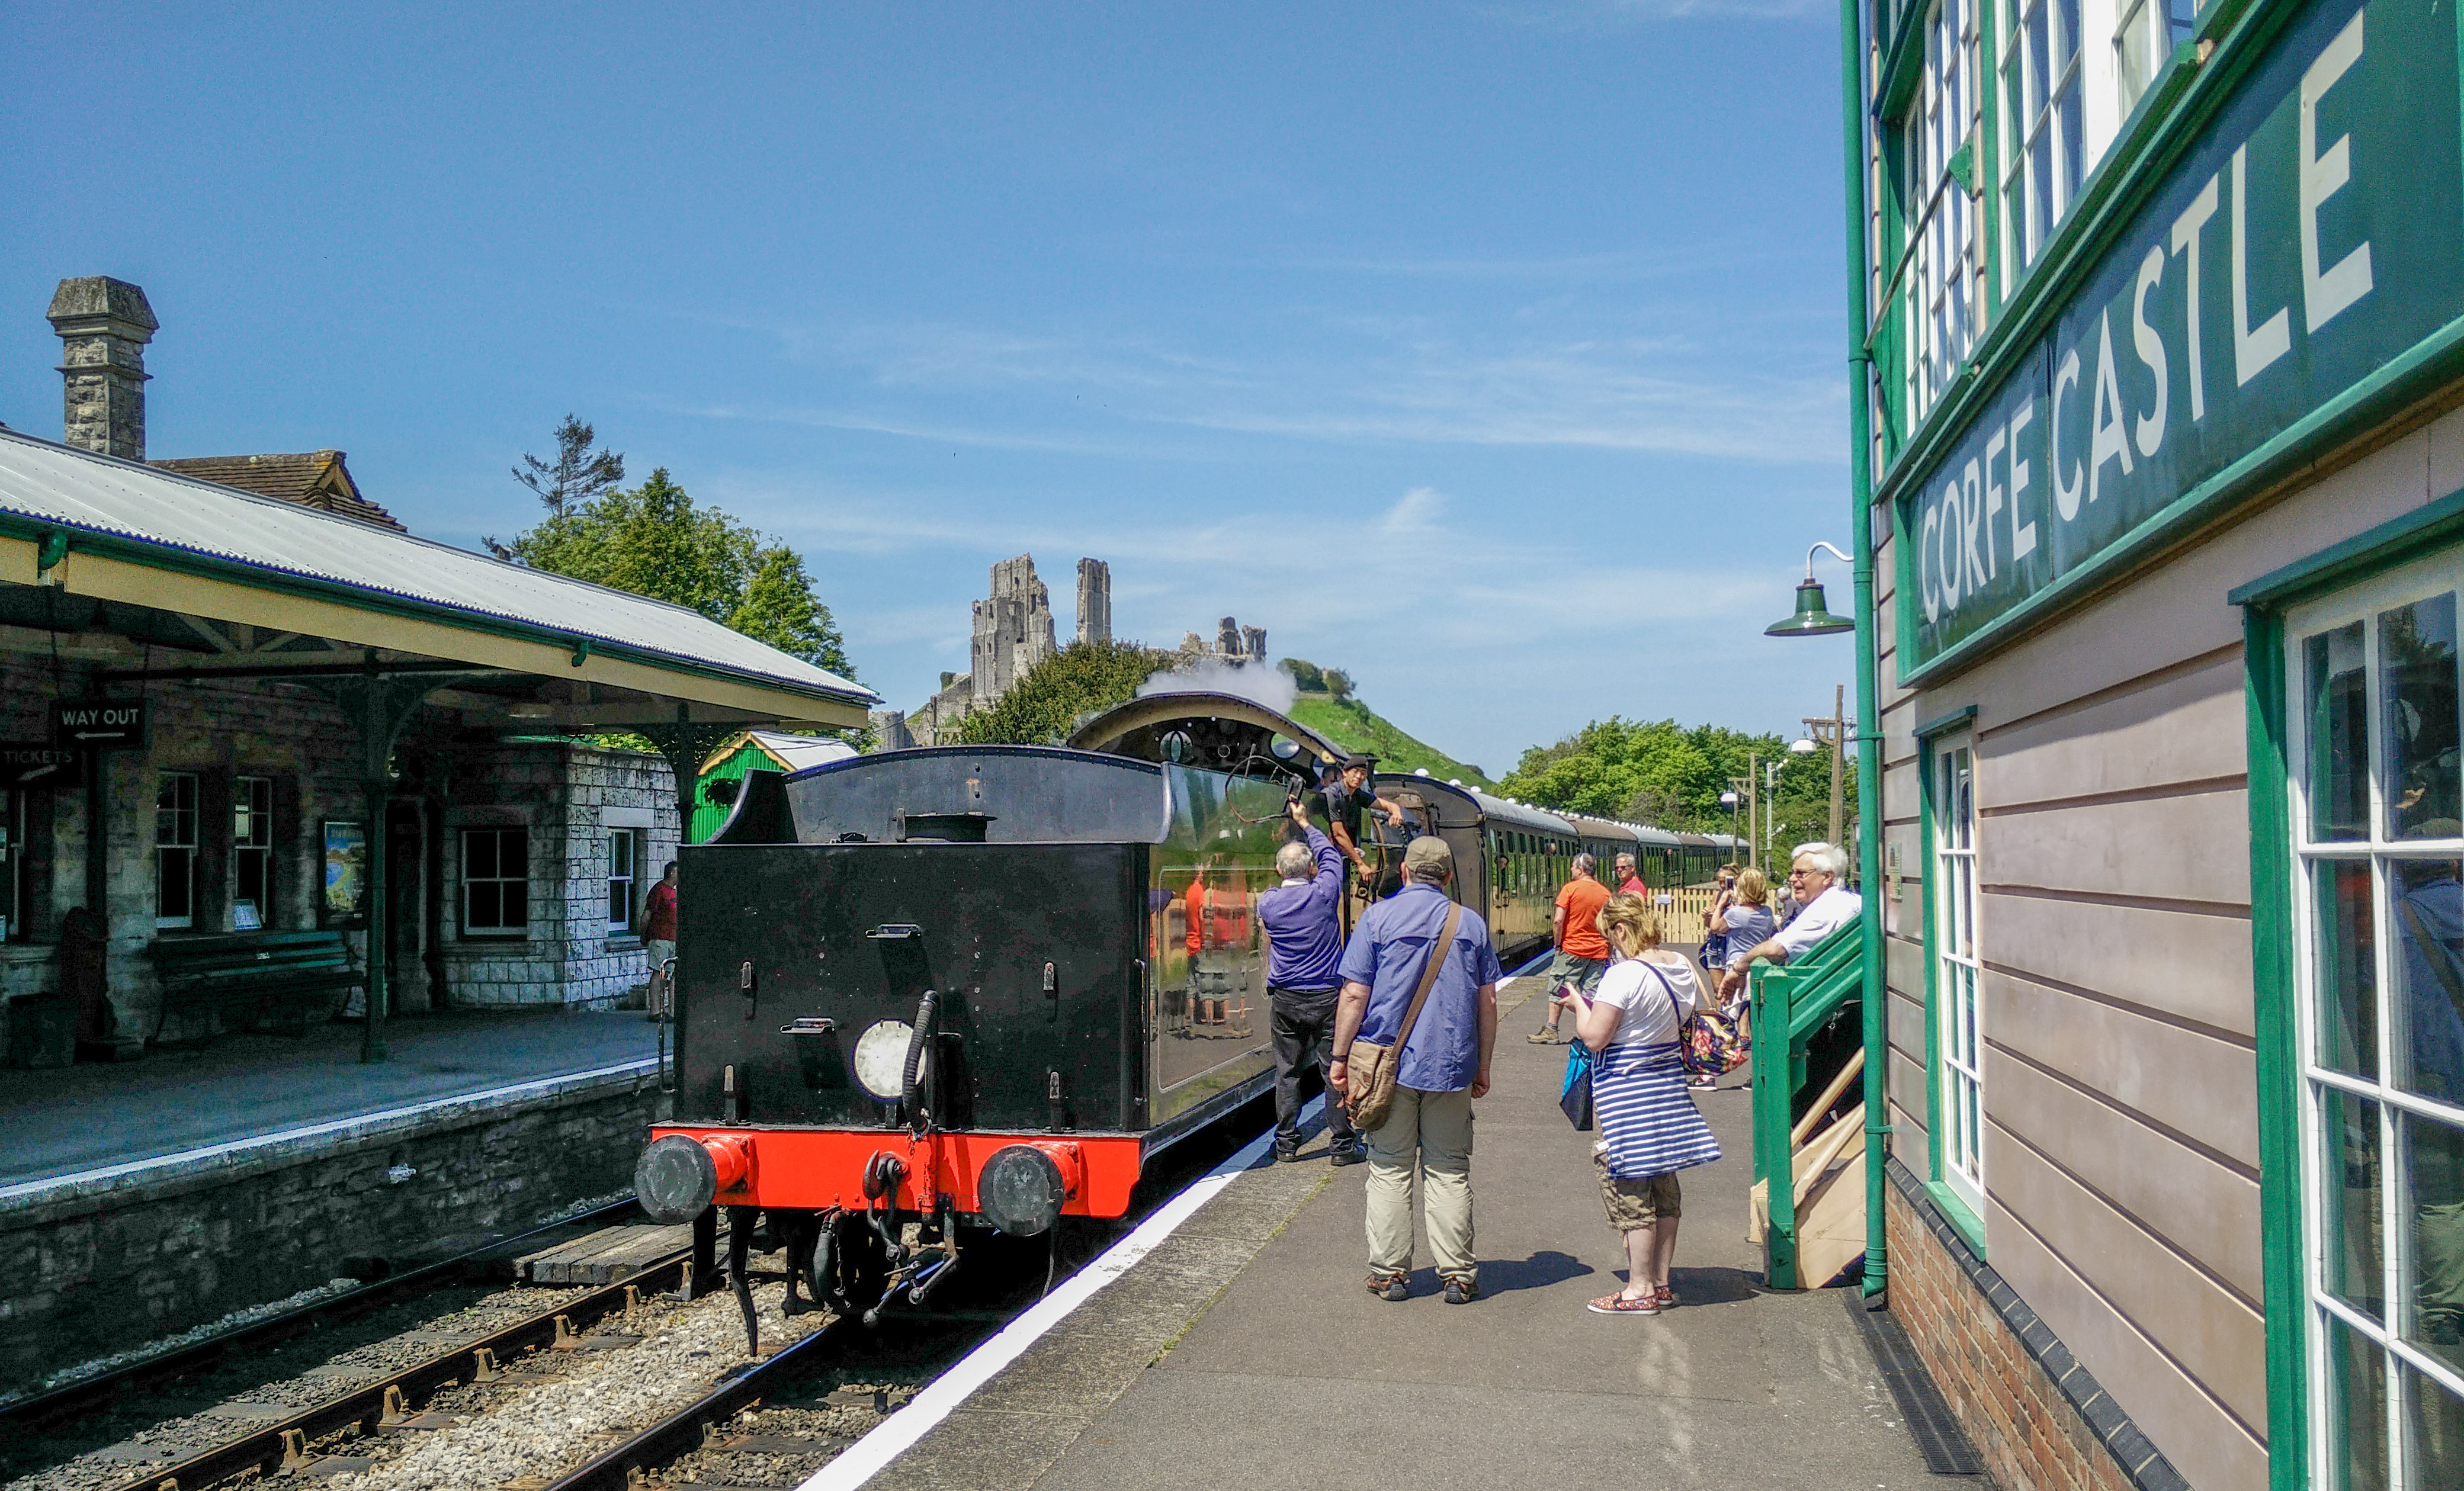 Corfe Castle station and my train.